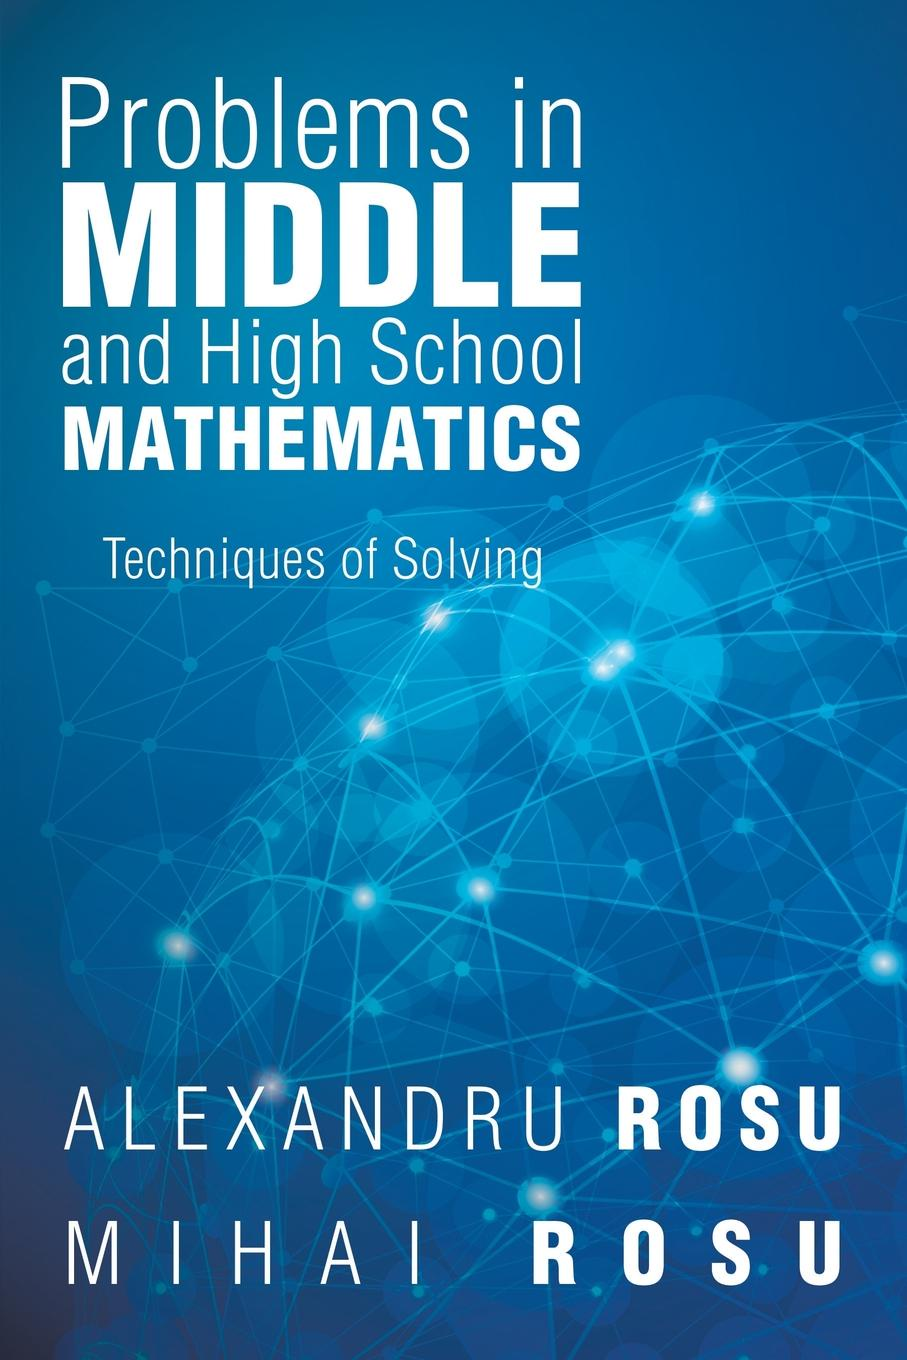 лучшая цена Mihai Rosu Alexandru Rosu Problems in Middle and High School Mathematics. Techniques of Solving